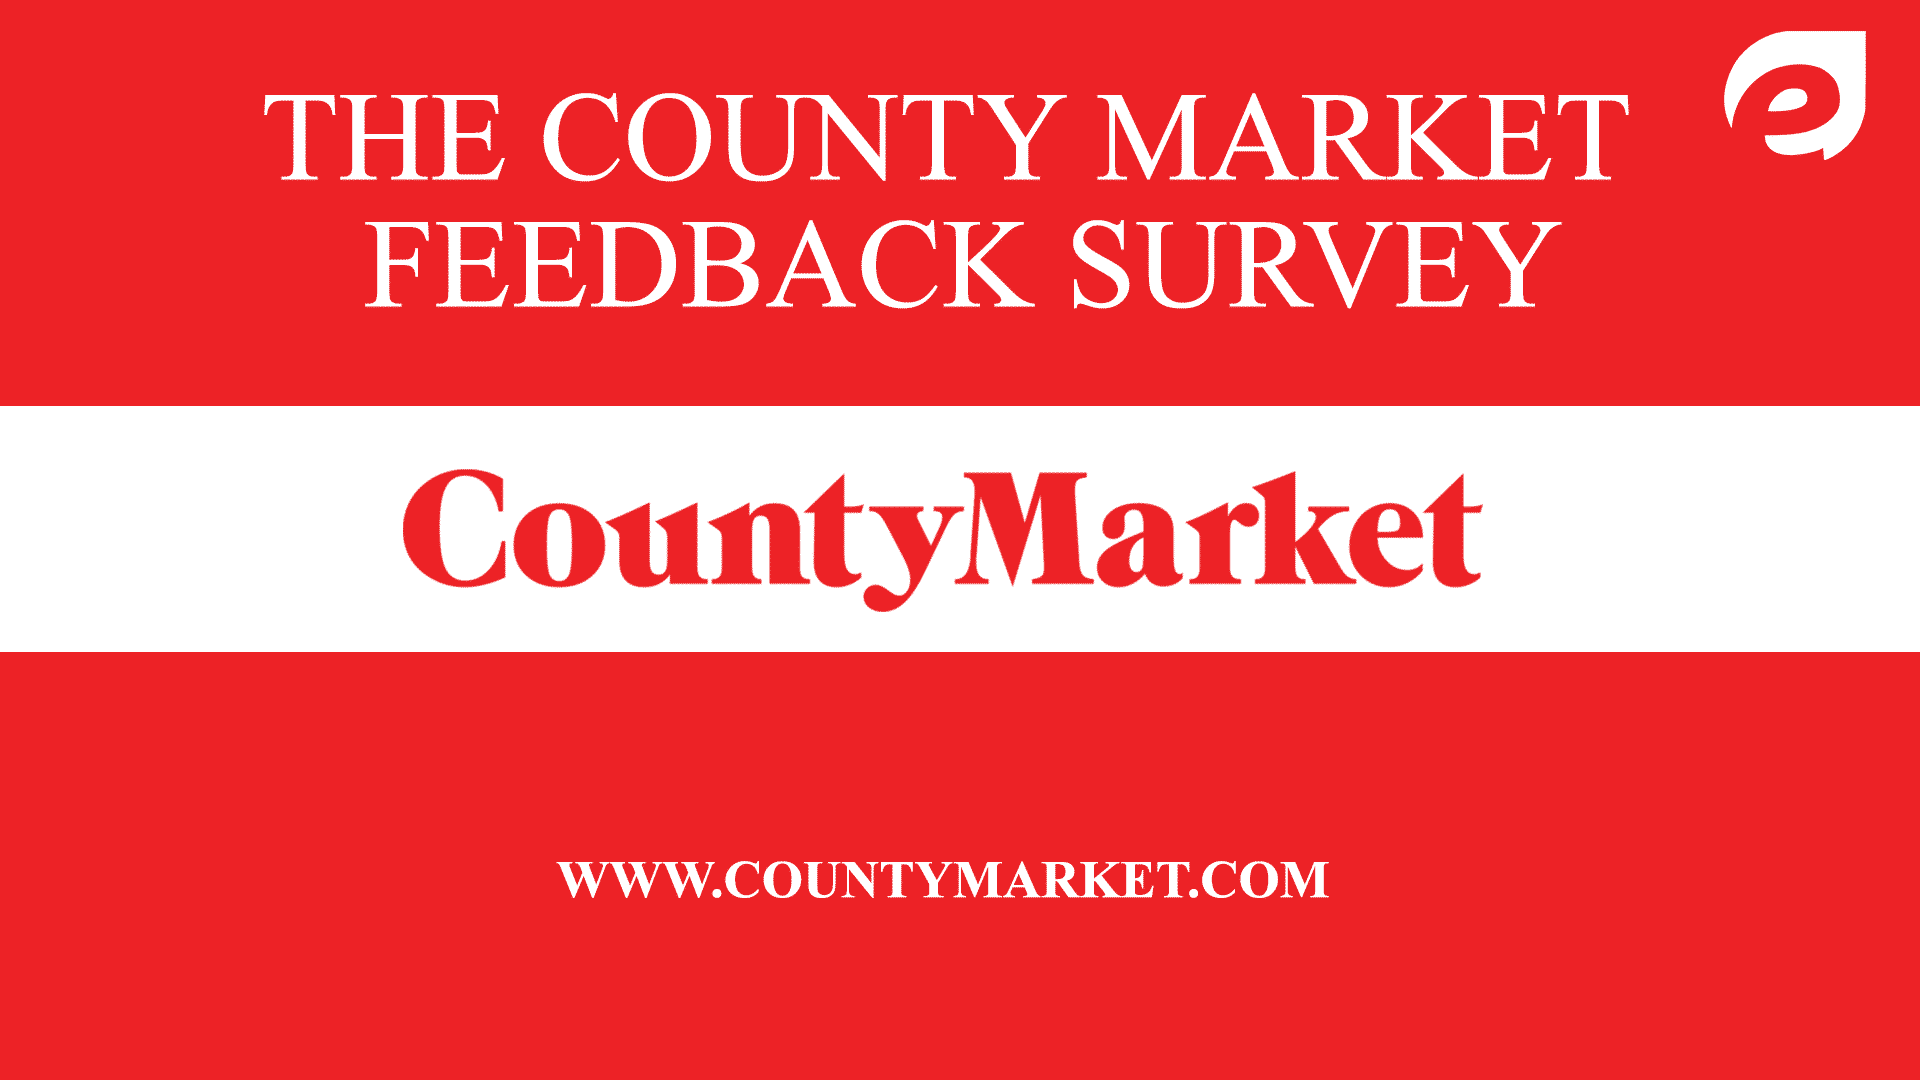 County Market Feedback